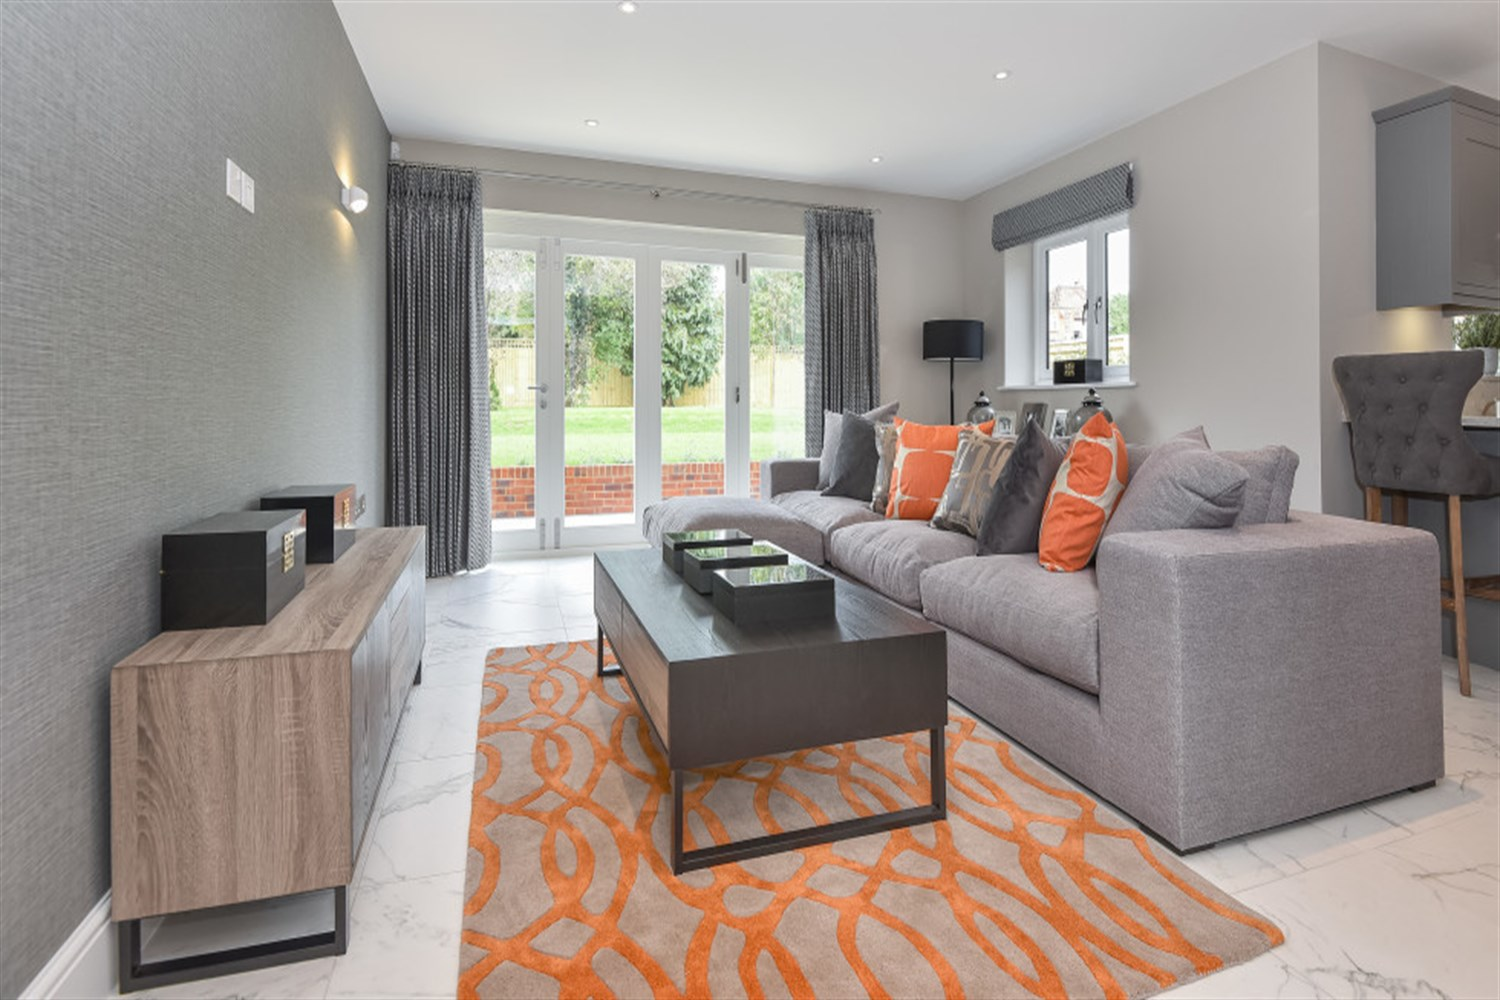 The Mulberry at Nursery Gardens - 5 bed detached, Hurst, RG10 0DX